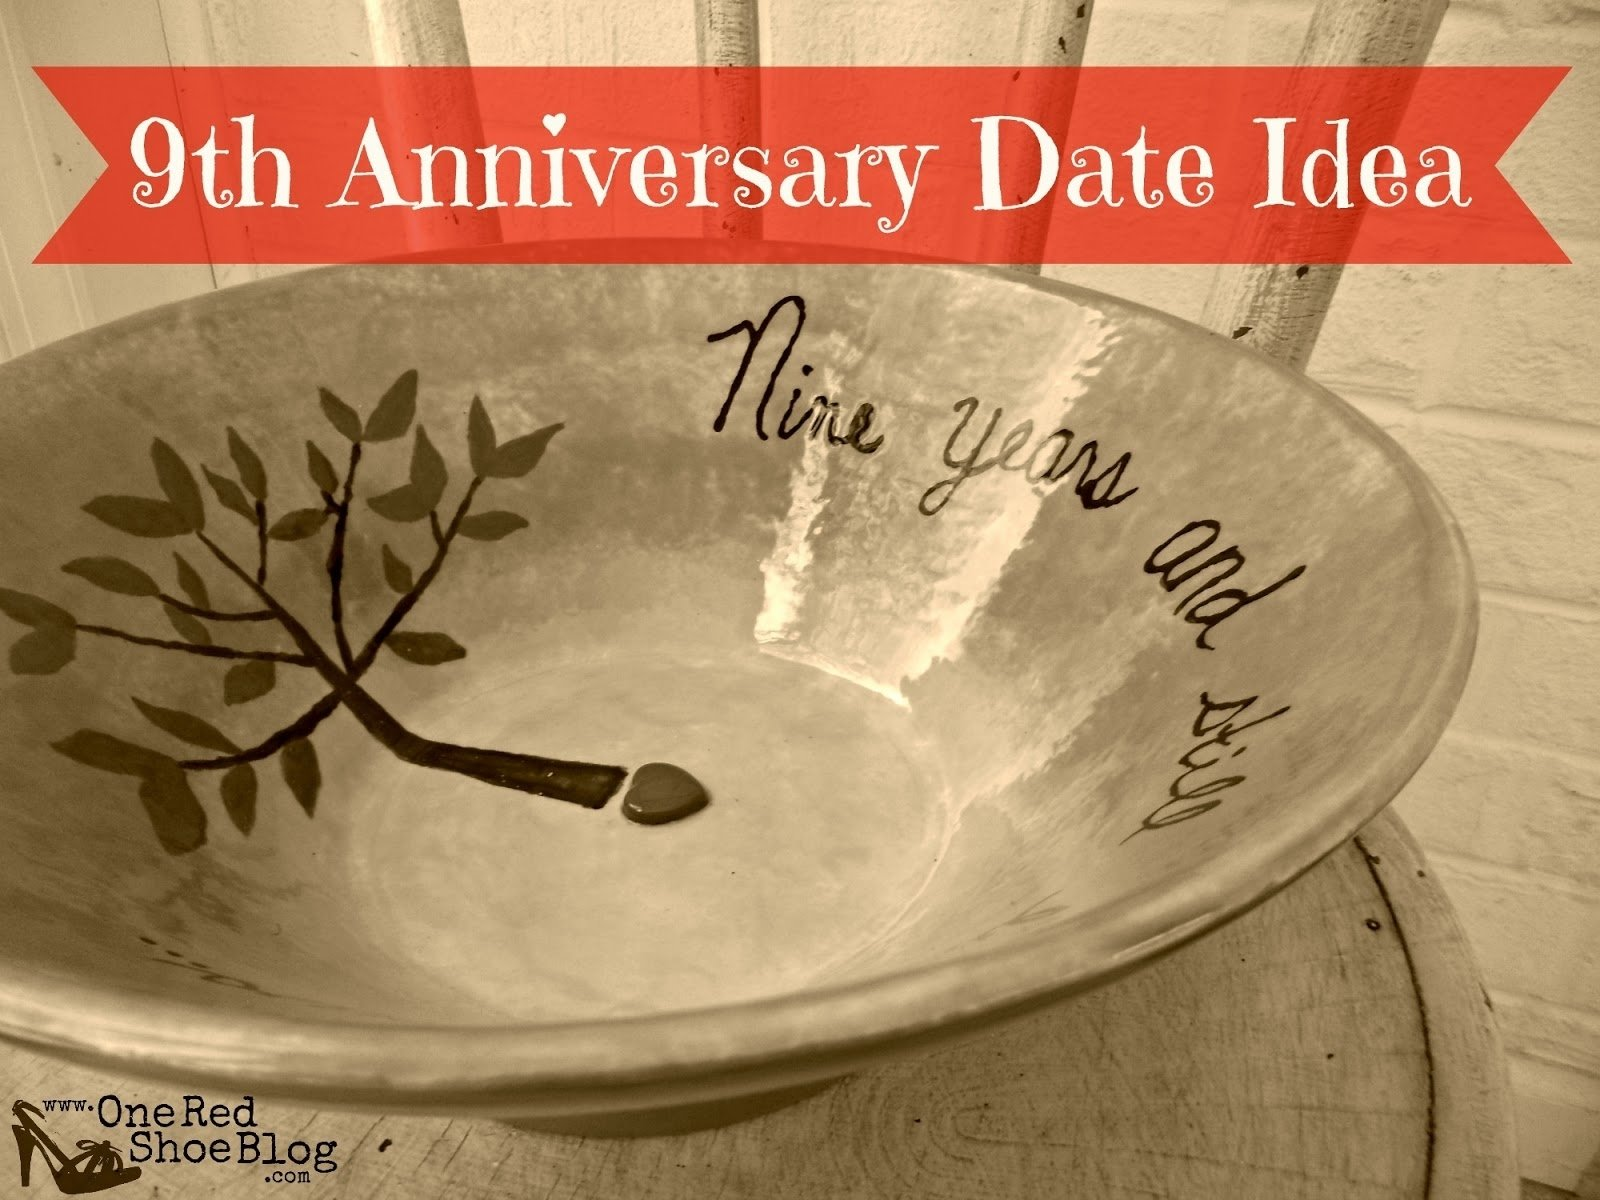 9th anniversary - pottery (idea for anniversary date night